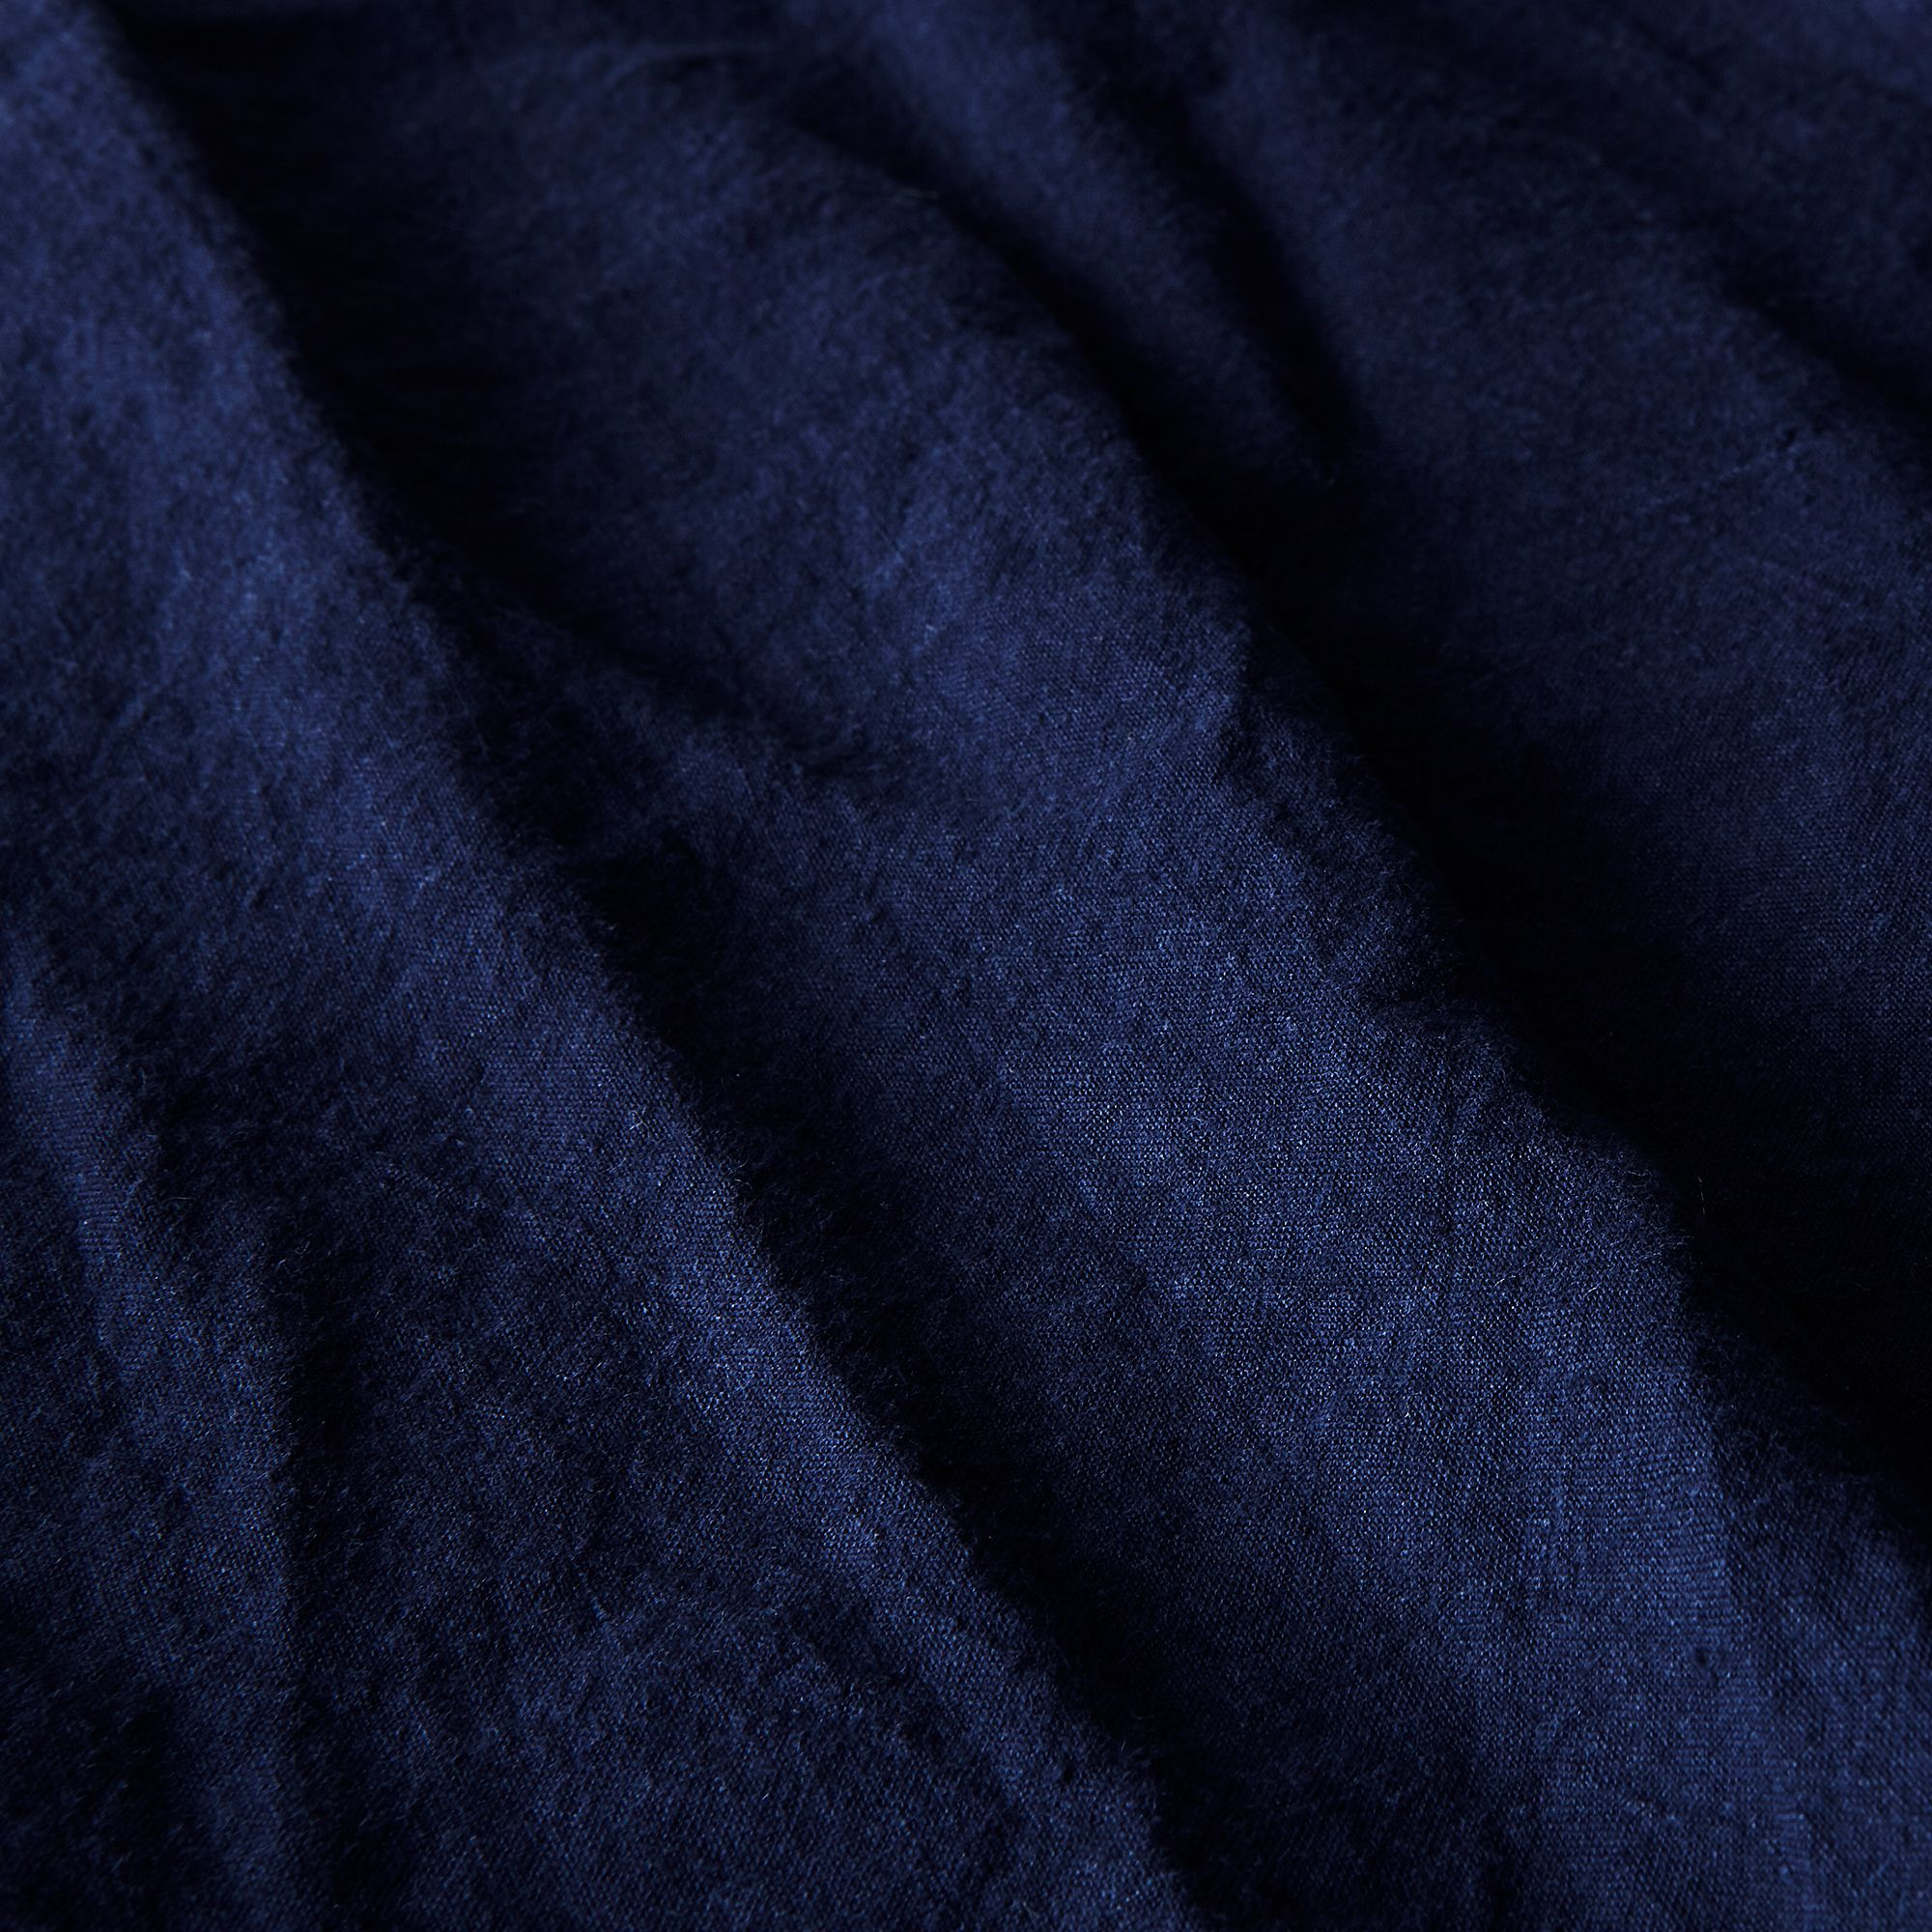 7a11a597 3589 4377 9672 ee00a23f3117  2017 0711 hawkins new york exclusive linen bedding navy detail silo rocky luten 003 2